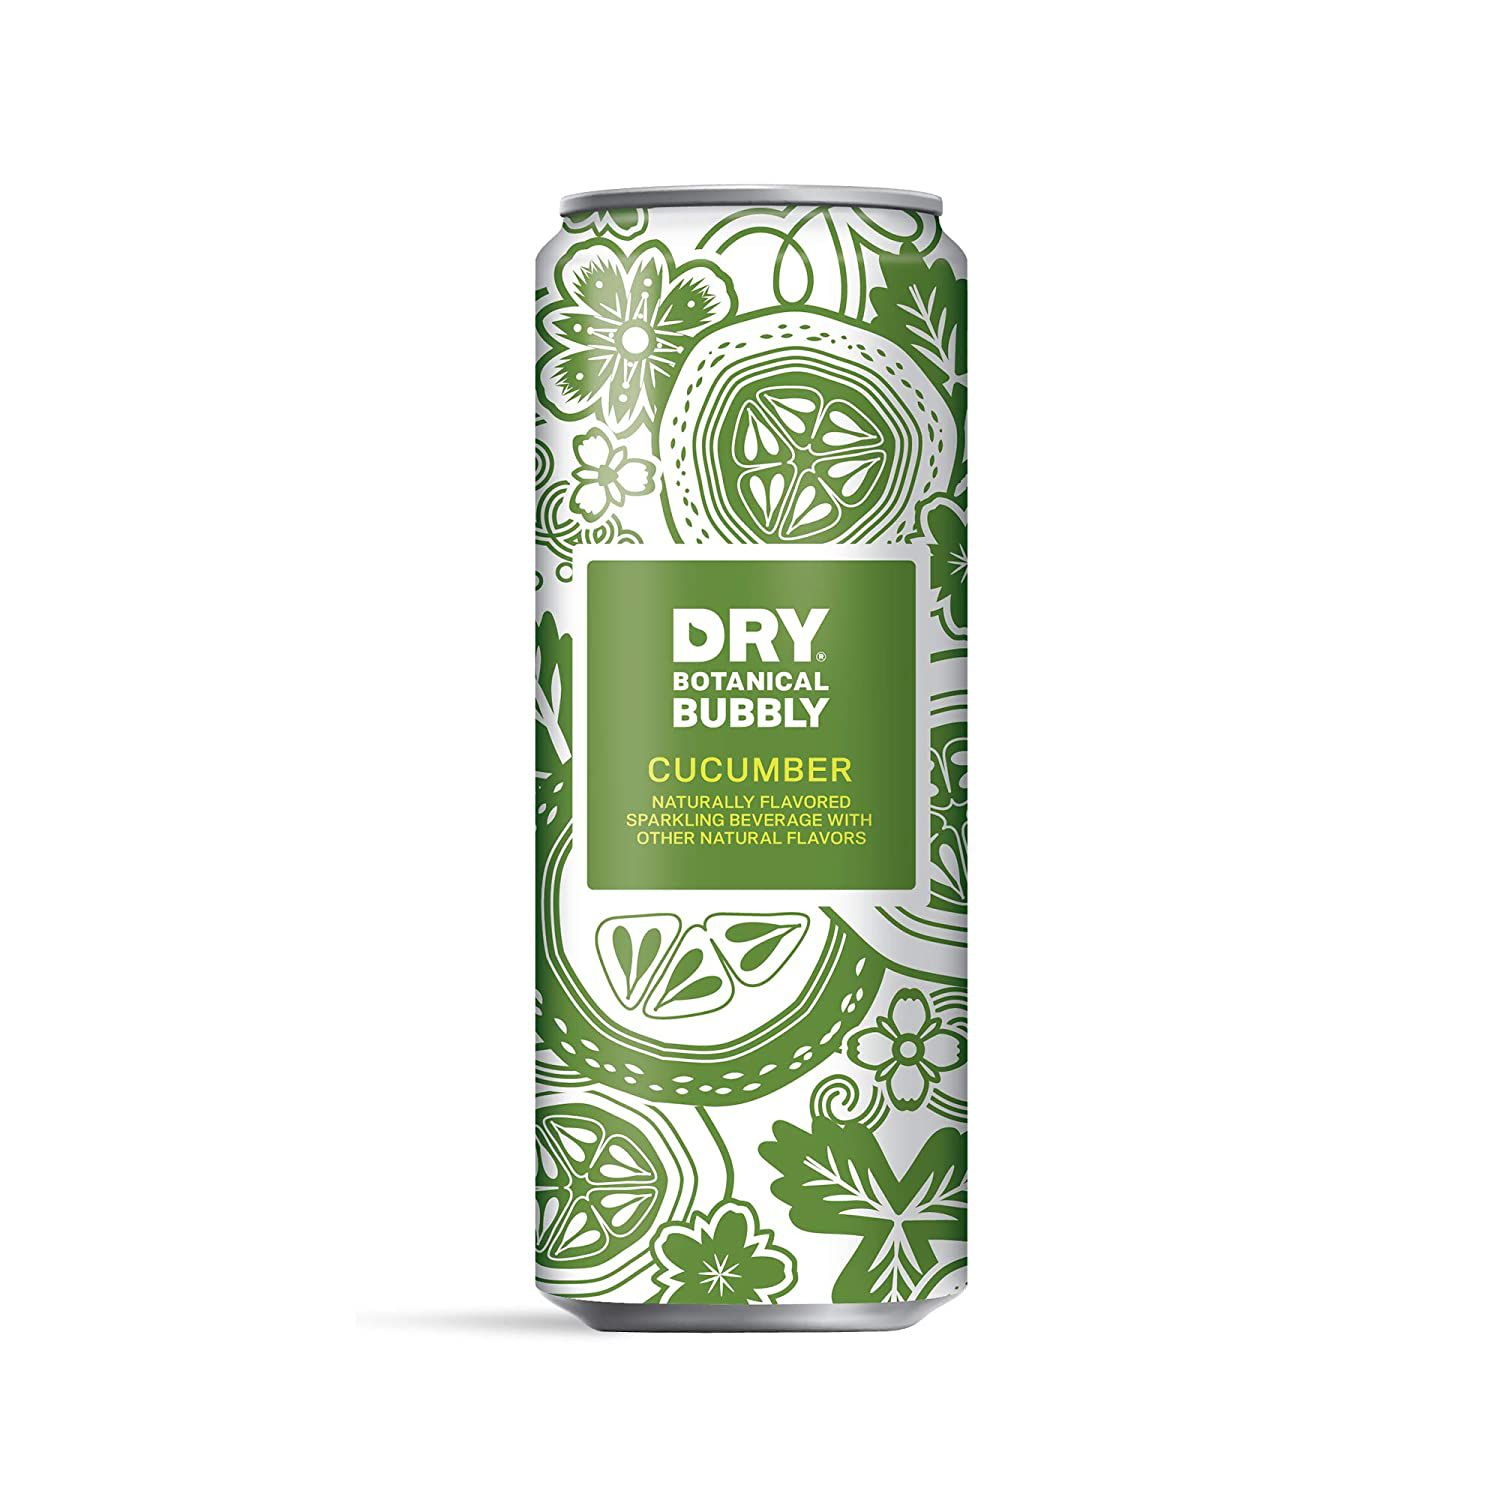 DRY Non-Alcoholic Botanical Bubbly Sparkling Water